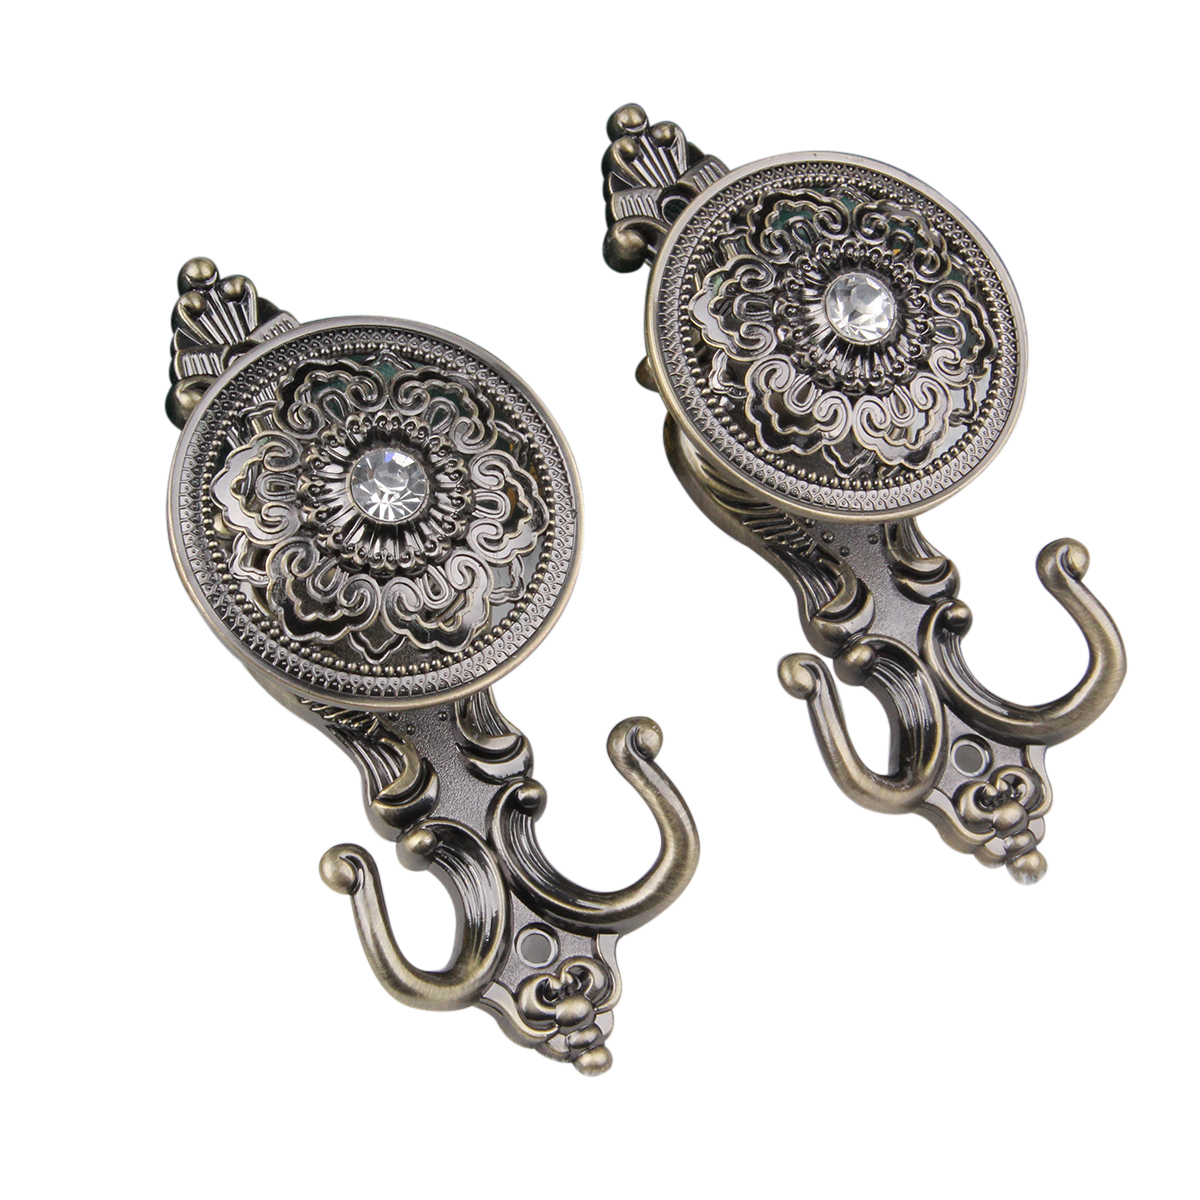 Antique Bronze Curtain Tie Backs Us 7 96 40 Off Pair Of Rose Style Drapery Curtain Holdbacks Tieback Hooks Bronze In Curtain Decorative Accessories From Home Garden On